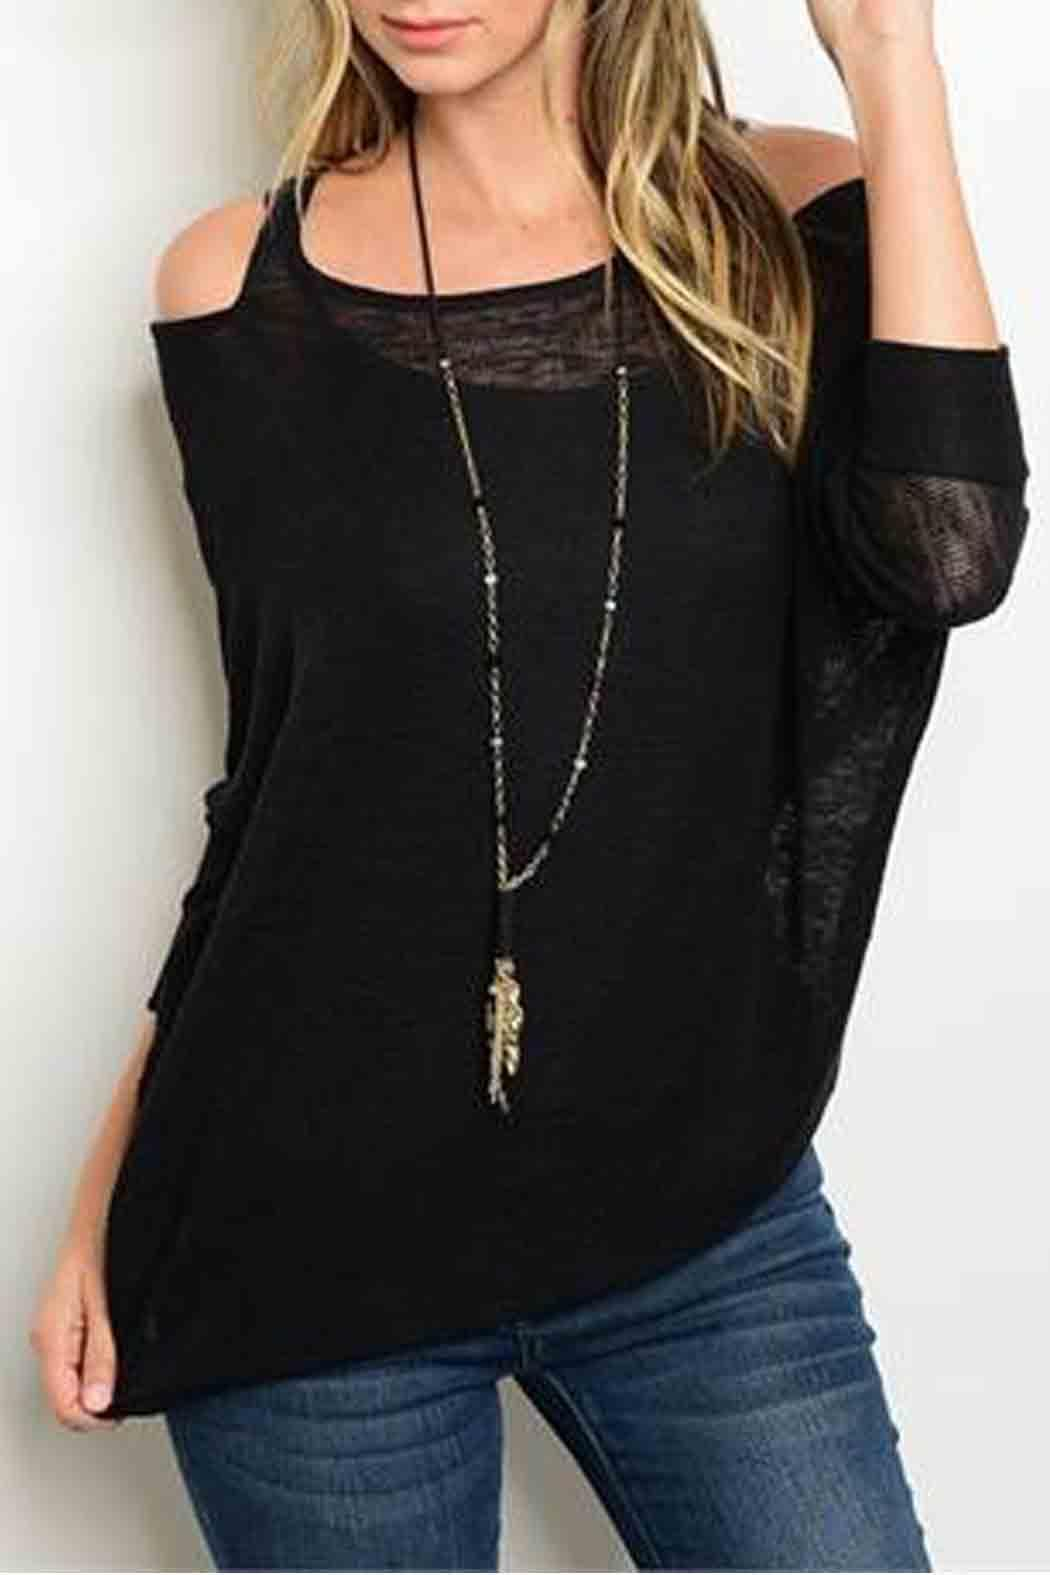 f896ac952f1b6 S-Twelve Black Cold Shoulder Sweater from California by Bus Shoppe ...